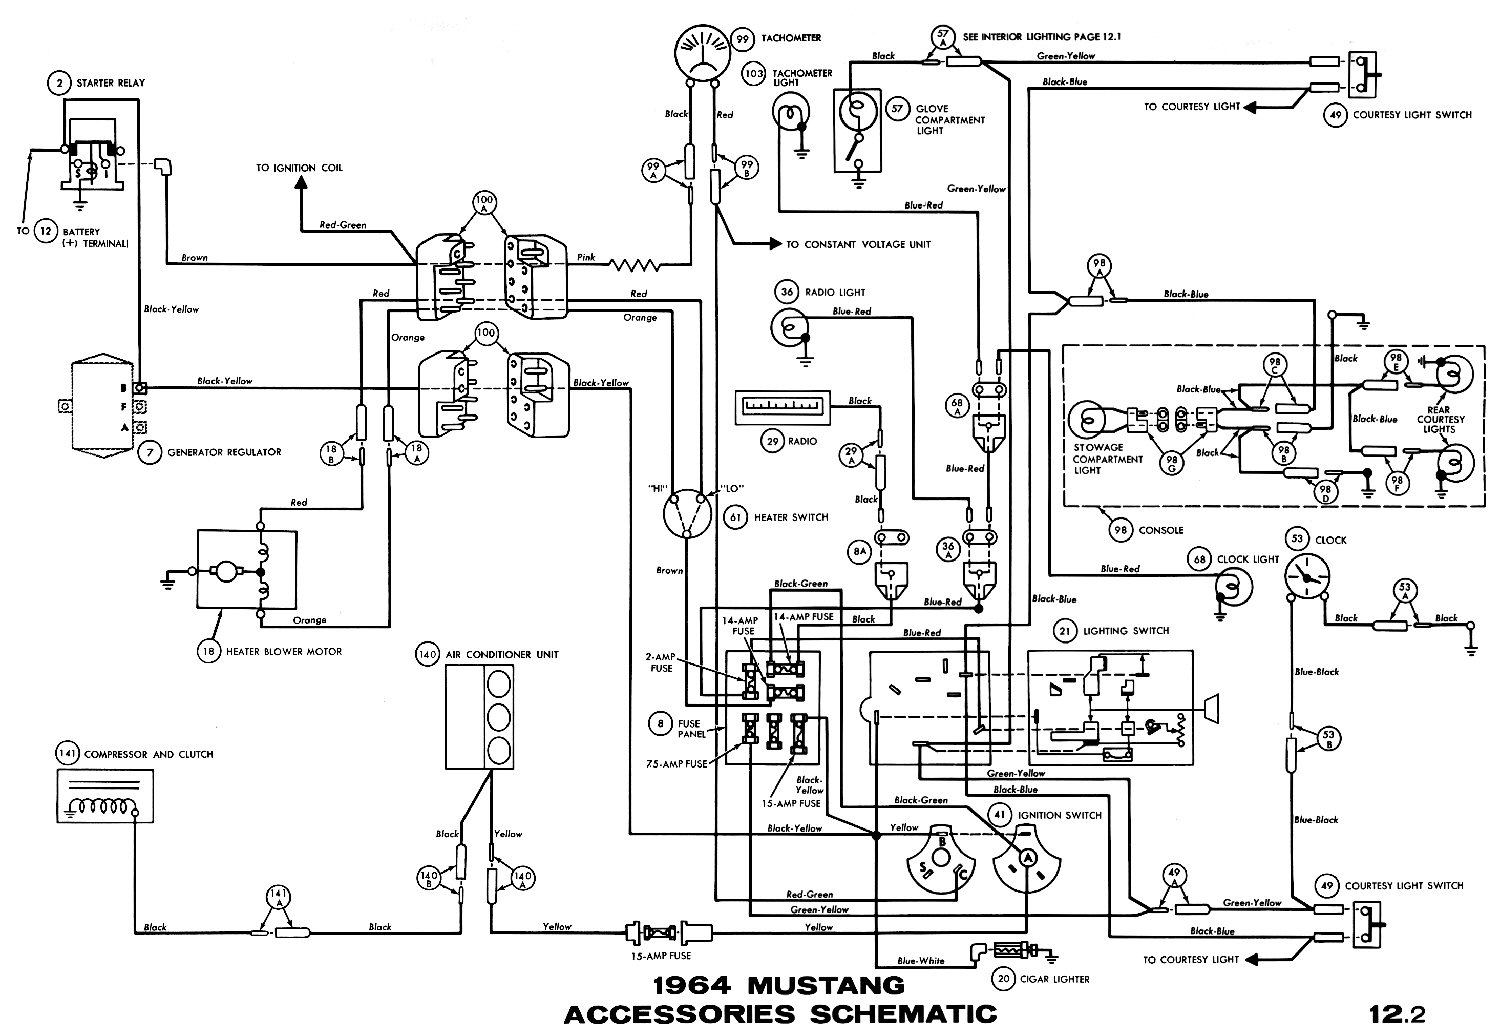 Schematics wiring additionally 1siik Give Diagram Install Powersteering Pump further Tbi350 as well 1977 Corvette Starter Wiring Diagram additionally Catalog3. on 1975 chevy alternator wiring diagram